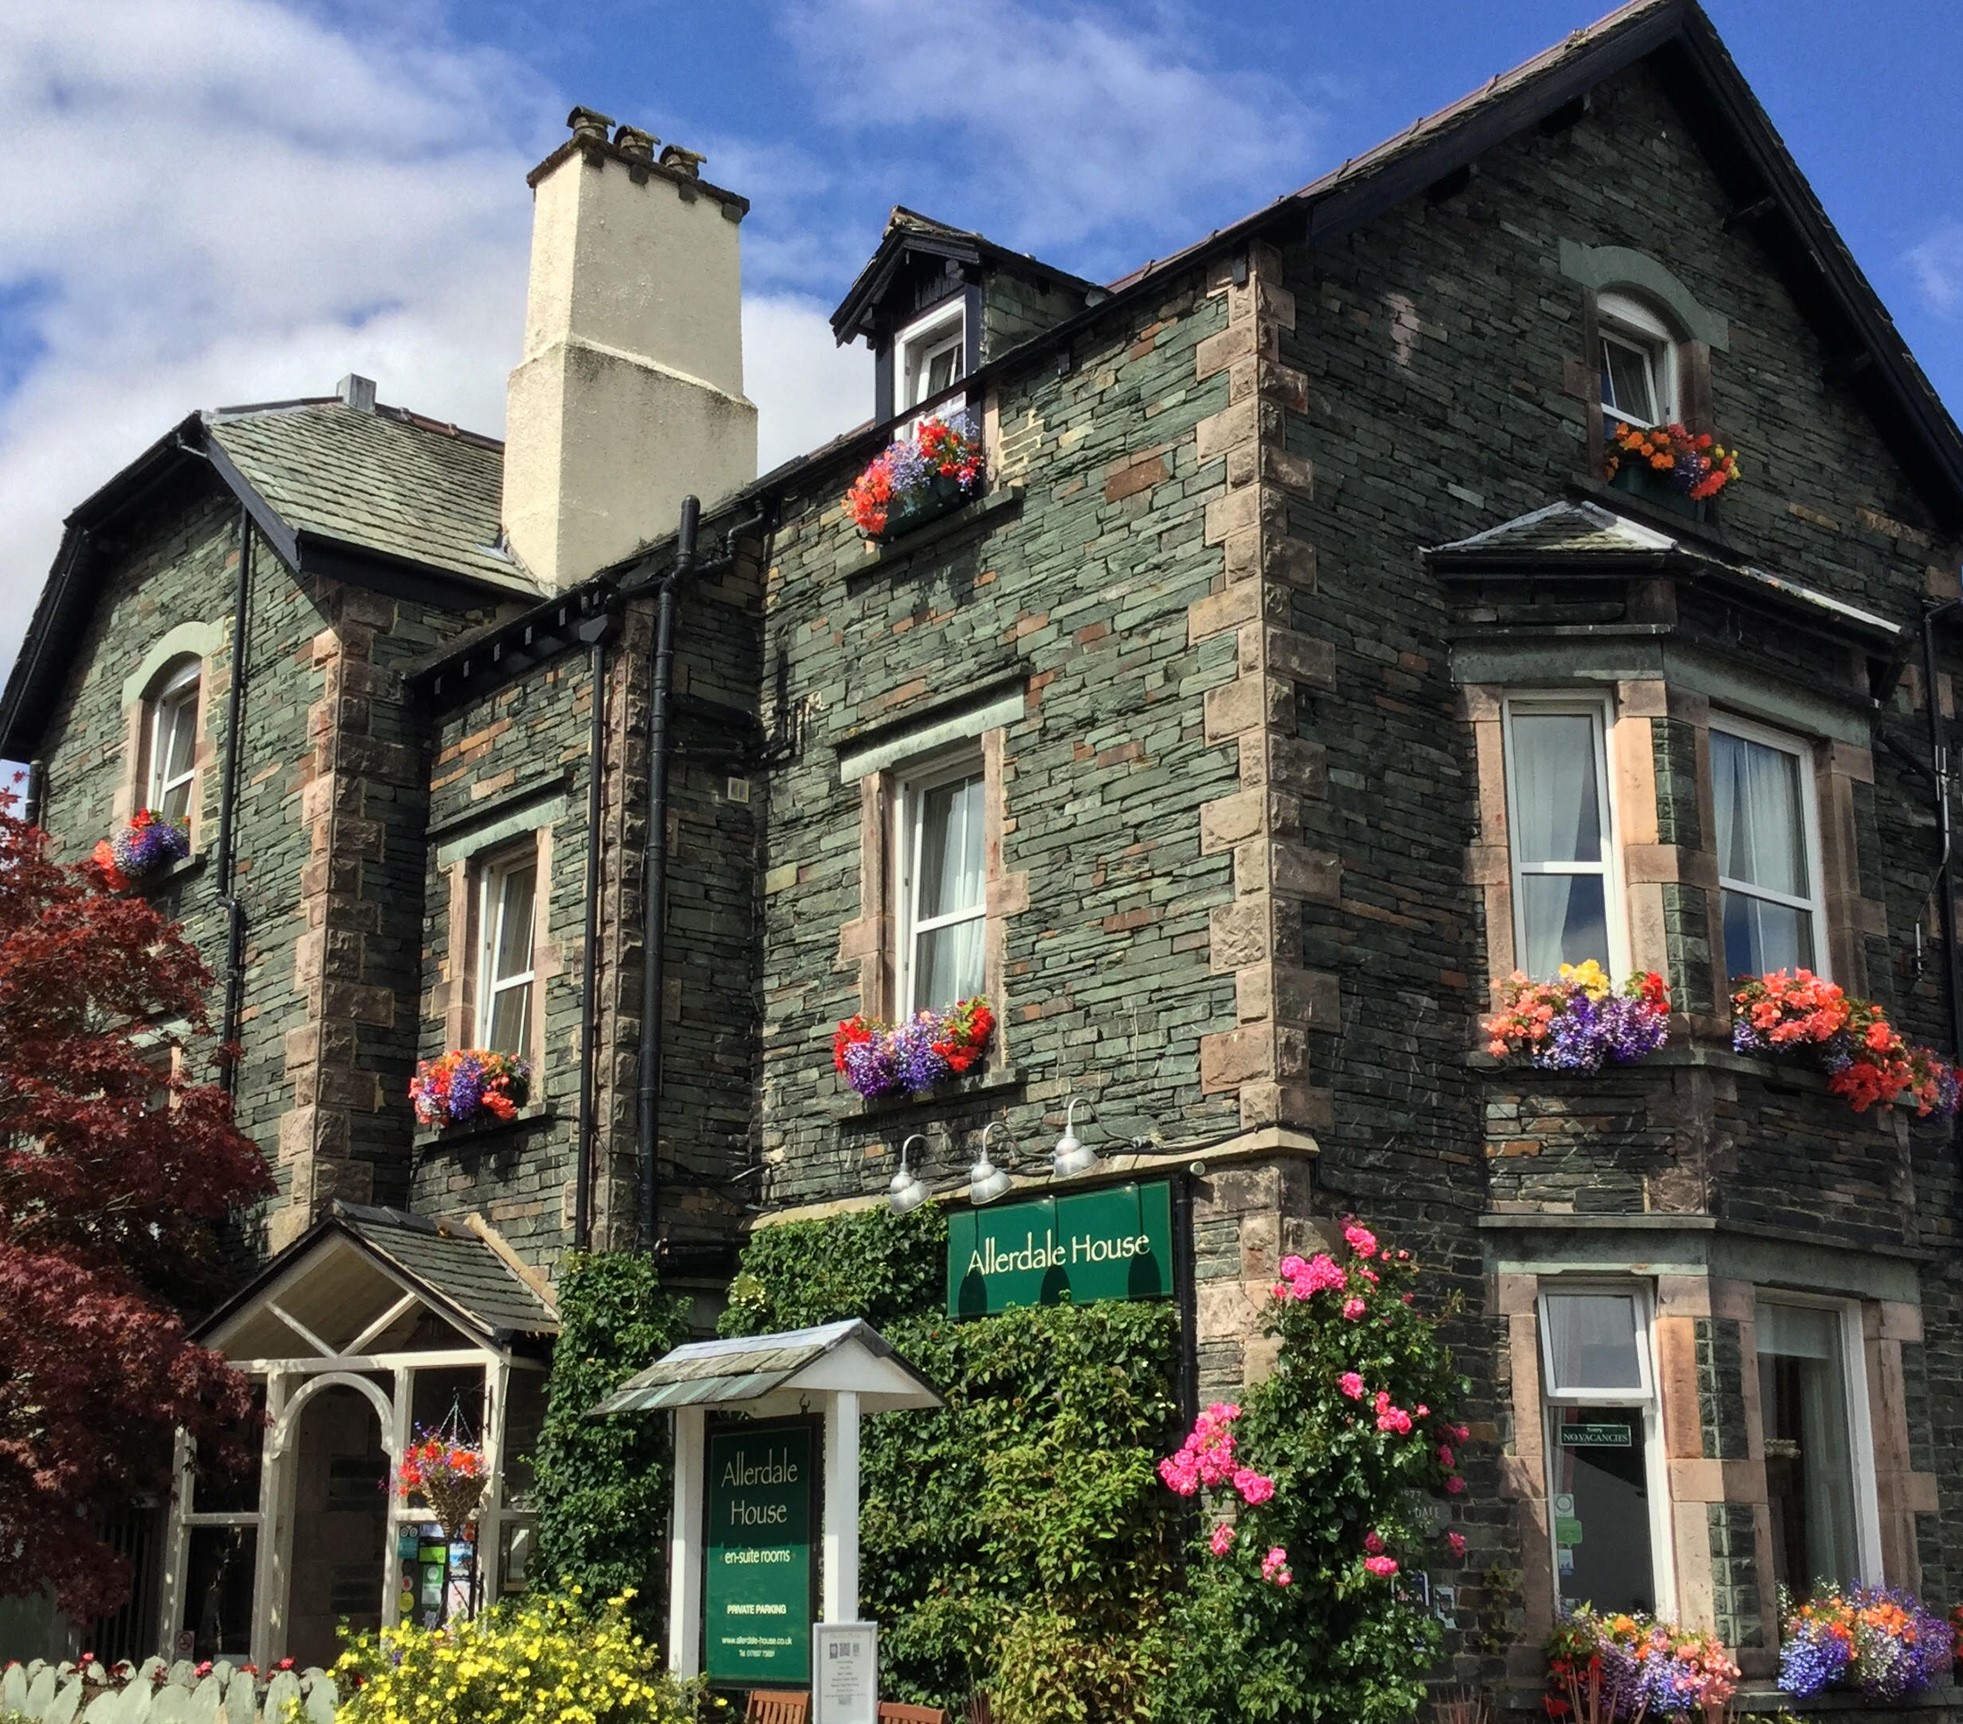 Allerdale House    Allerdale House is an award winning guest house offering high quality bed and breakfast accommodation in Keswick with private car parking for all our guests and free wi-fi.  Allerdale House is an interesting and impressive Lakeland stone building built around 1877 for a local dignitary.  It offers full en-suite accommodation with all the facilities associated with a small personally run guest house and is one of the few guest houses in Keswick owned and run by a local couple, Paul and Barbara, both born and raised in Keswick. They look forward to welcoming you to Allerdale House.  1 Eskin Street, Keswick, CA12 4DH  017687 73891